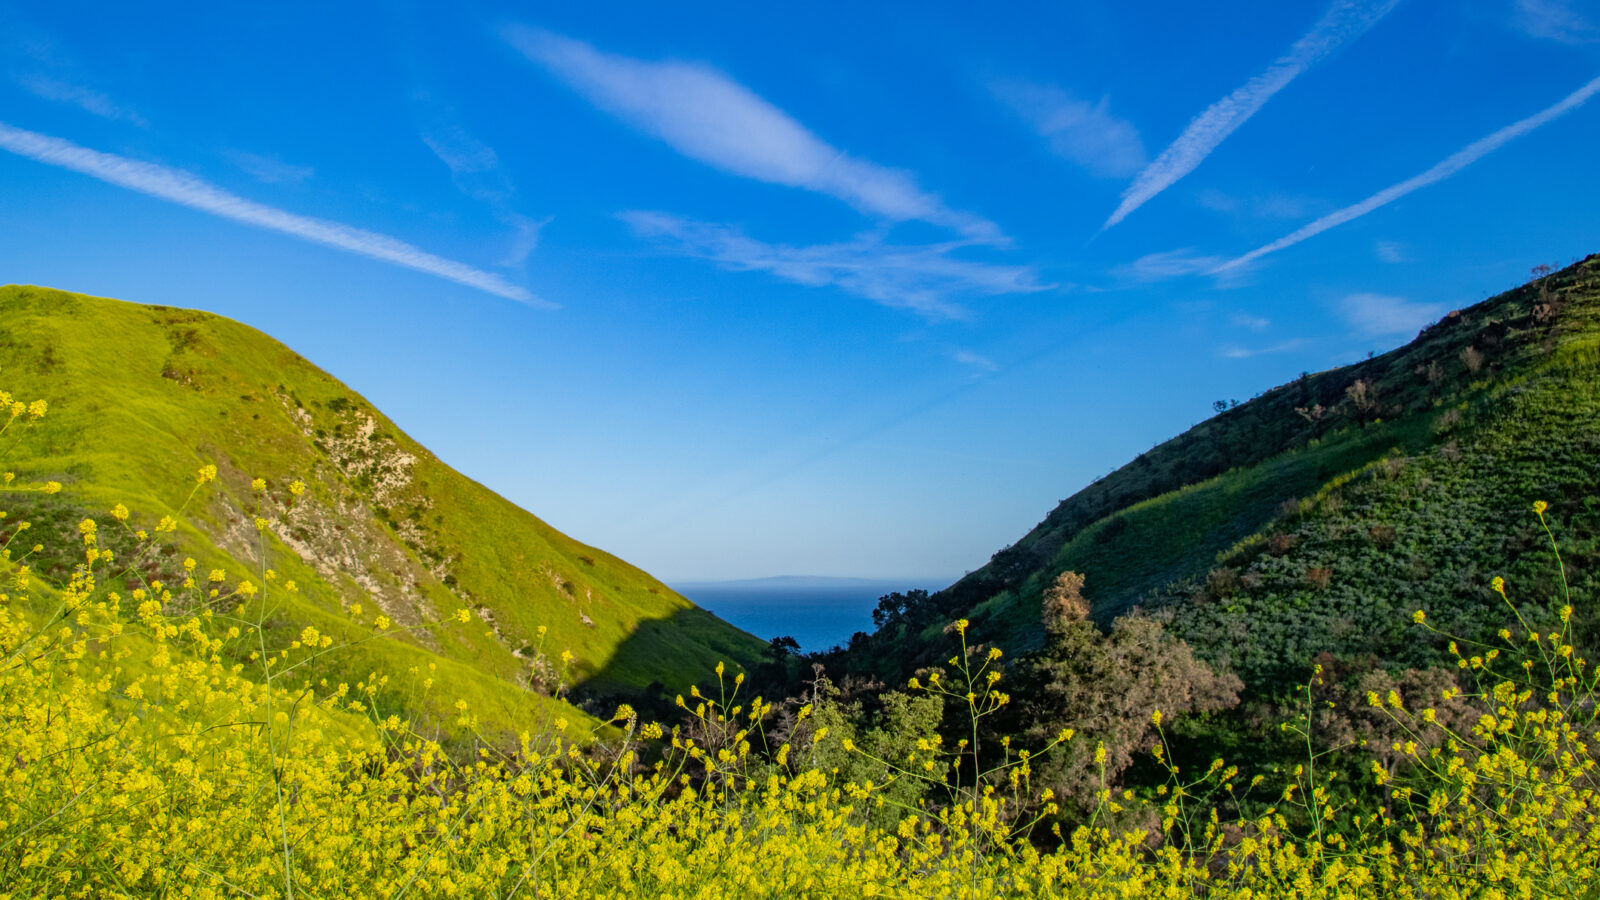 Solstice canyon malibu blue skies green hills